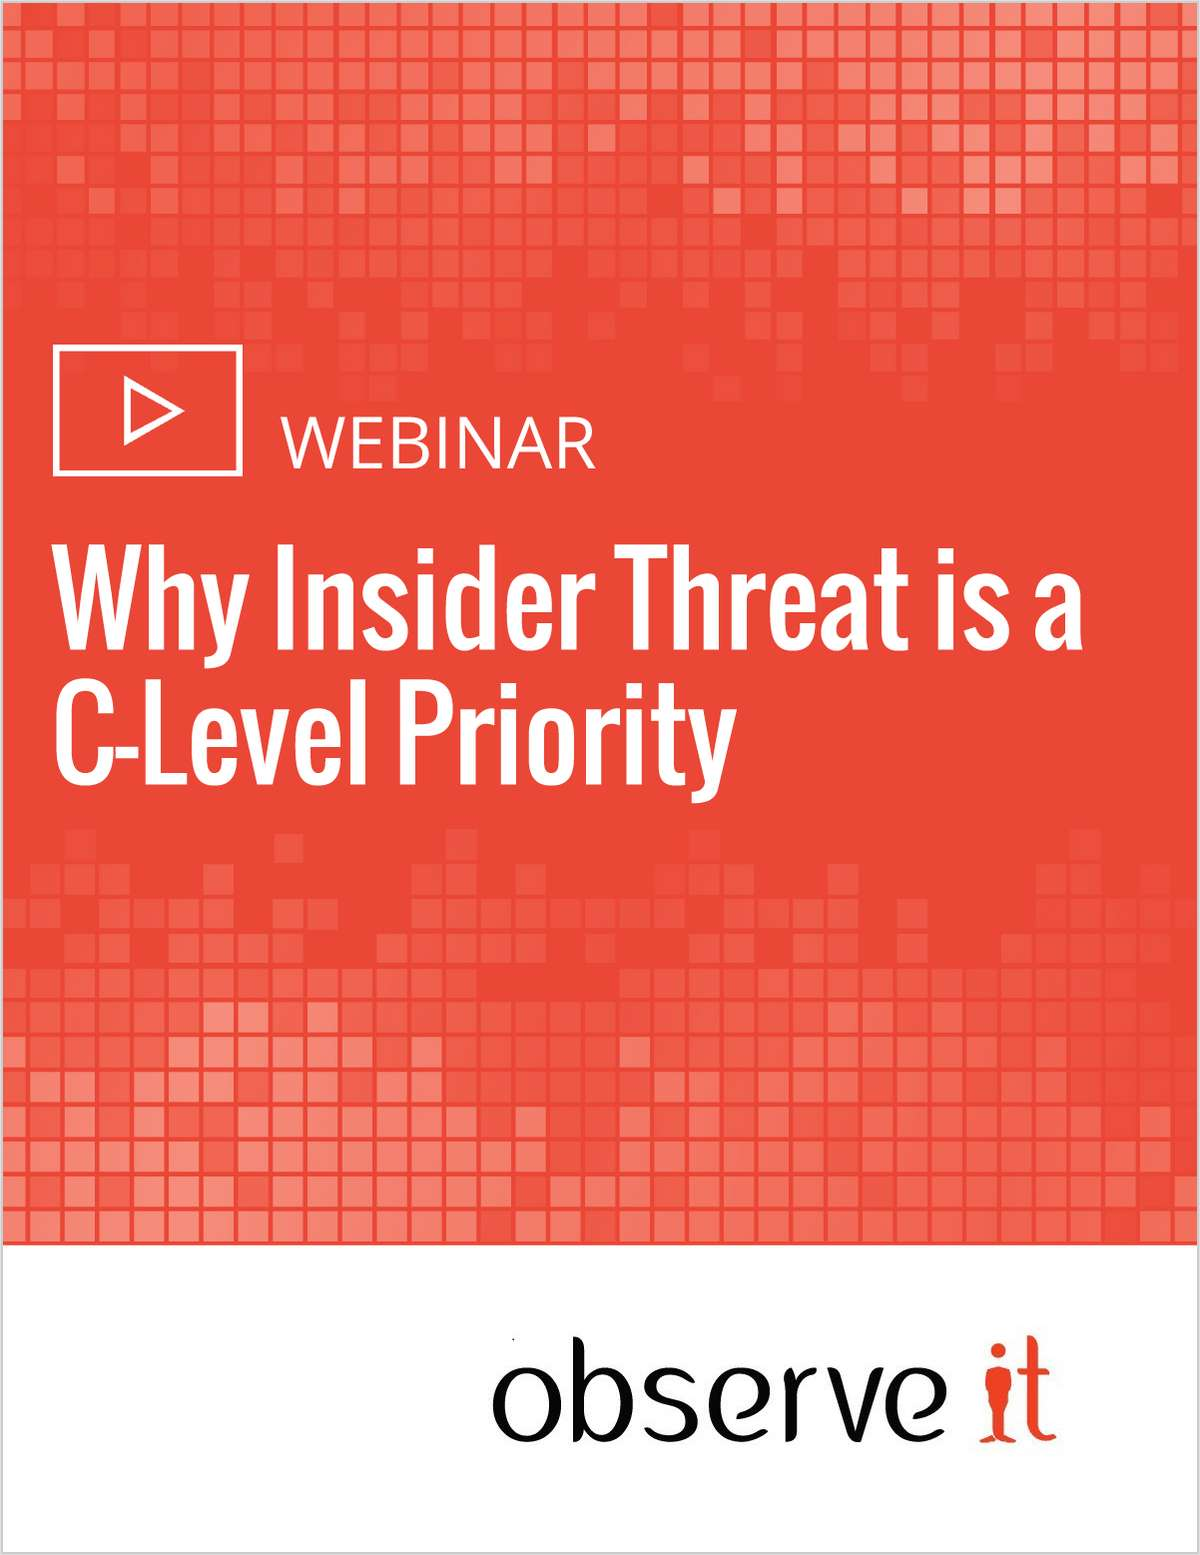 Why Insider Threat is a C-Level Priority